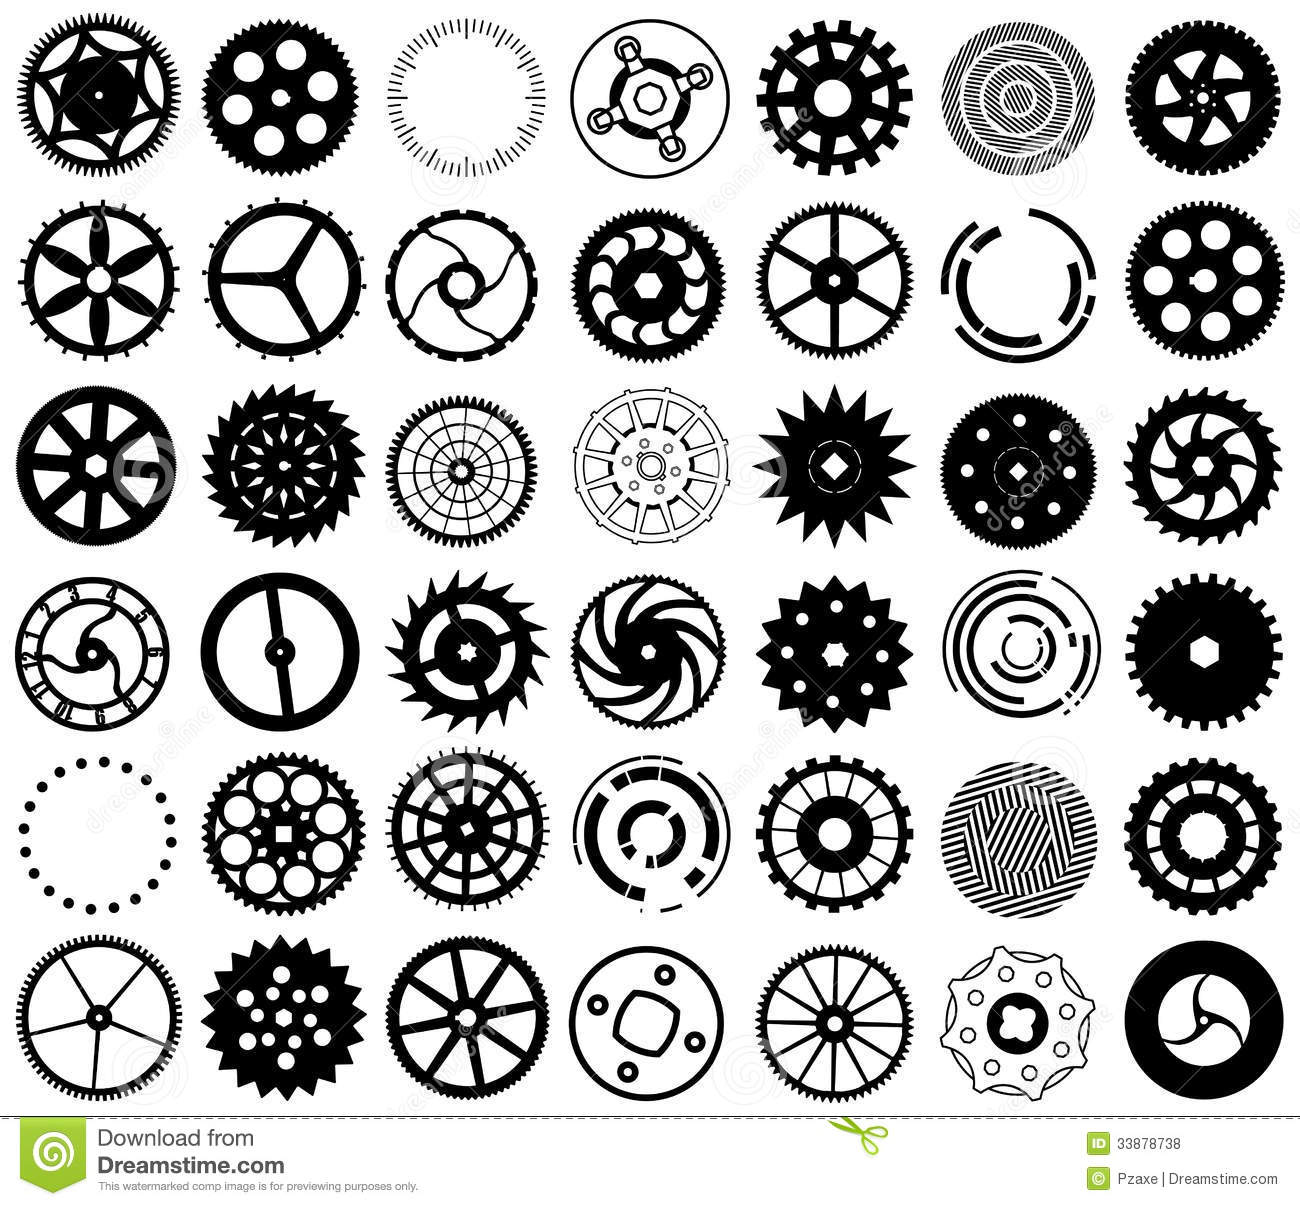 Gear Vector Art at GetDrawings com | Free for personal use